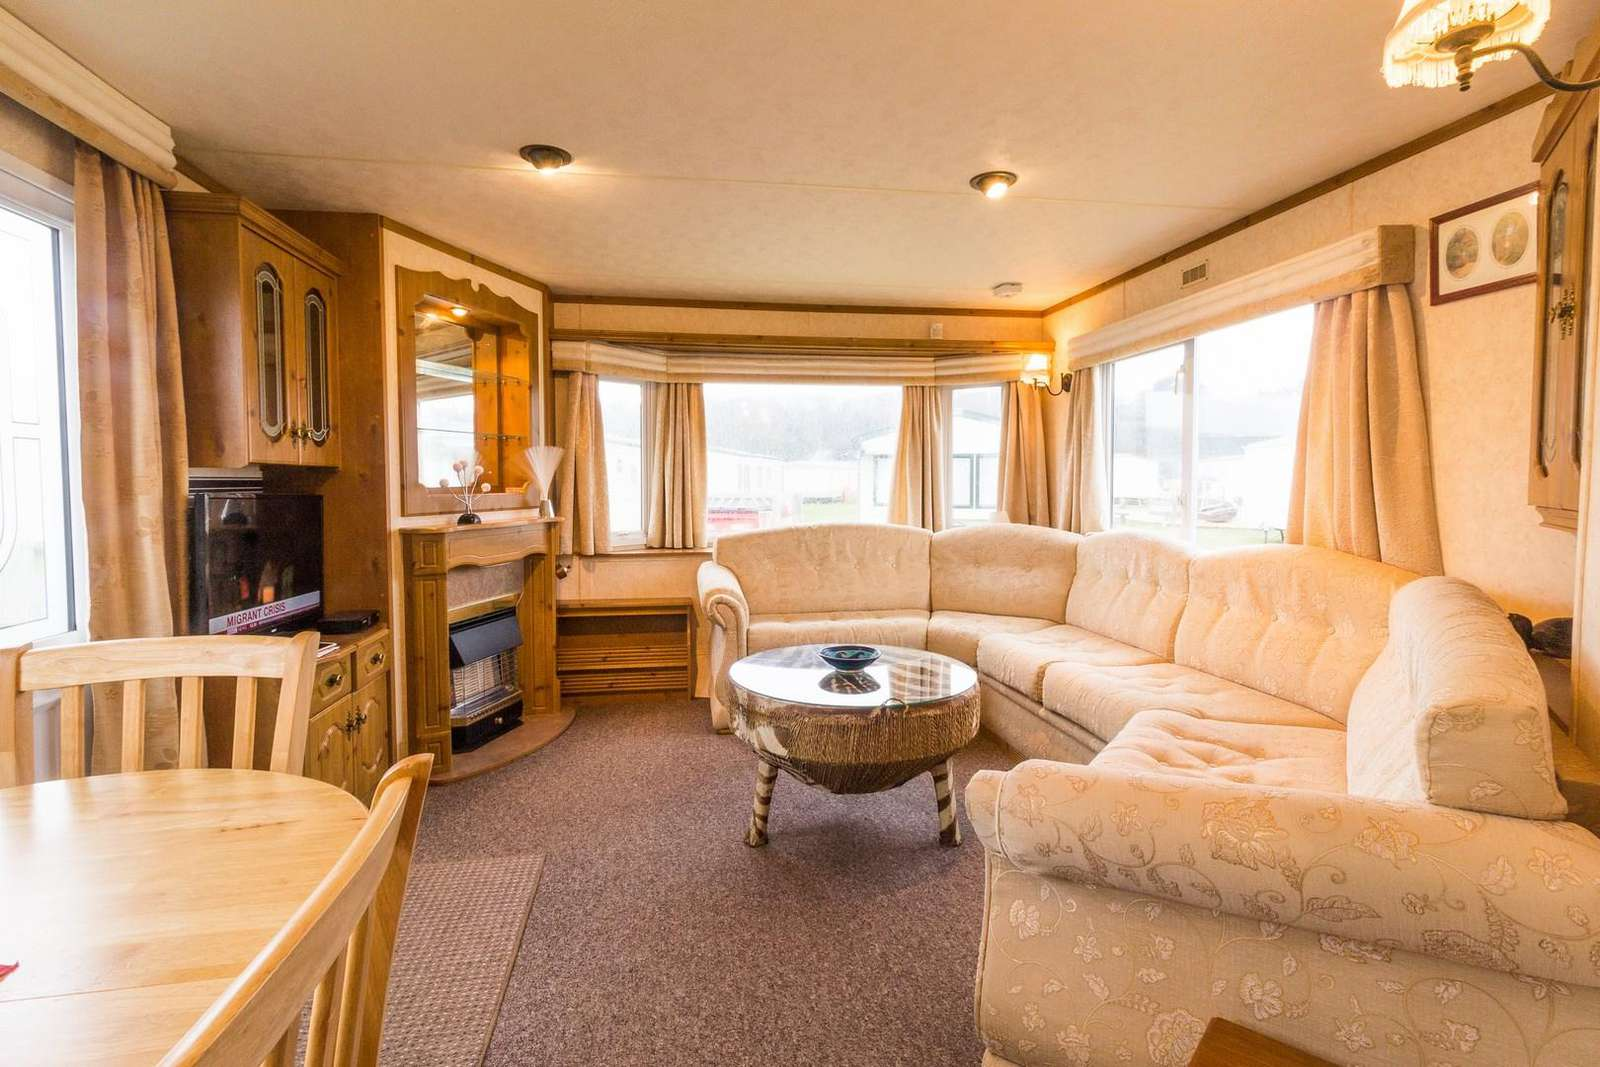 Spacious living area, great for families